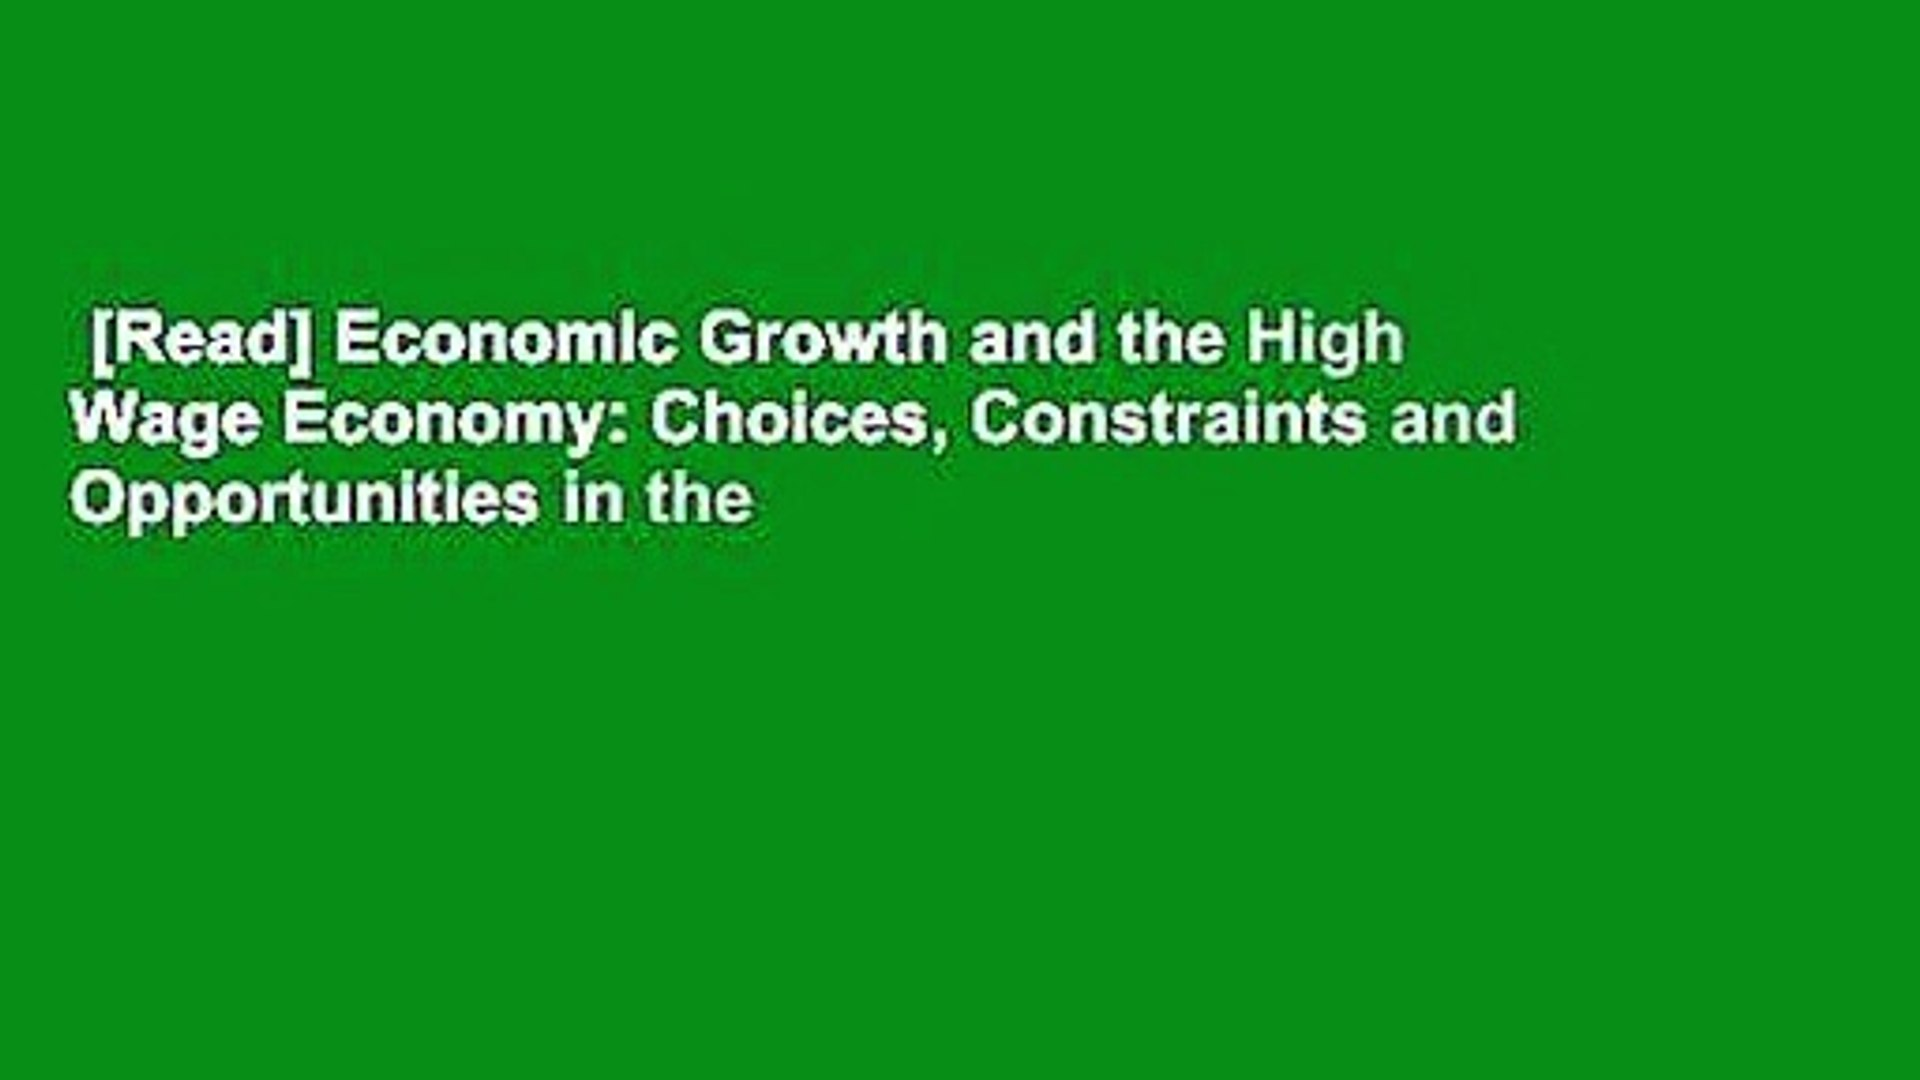 [Read] Economic Growth and the High Wage Economy: Choices, Constraints and Opportunities in the